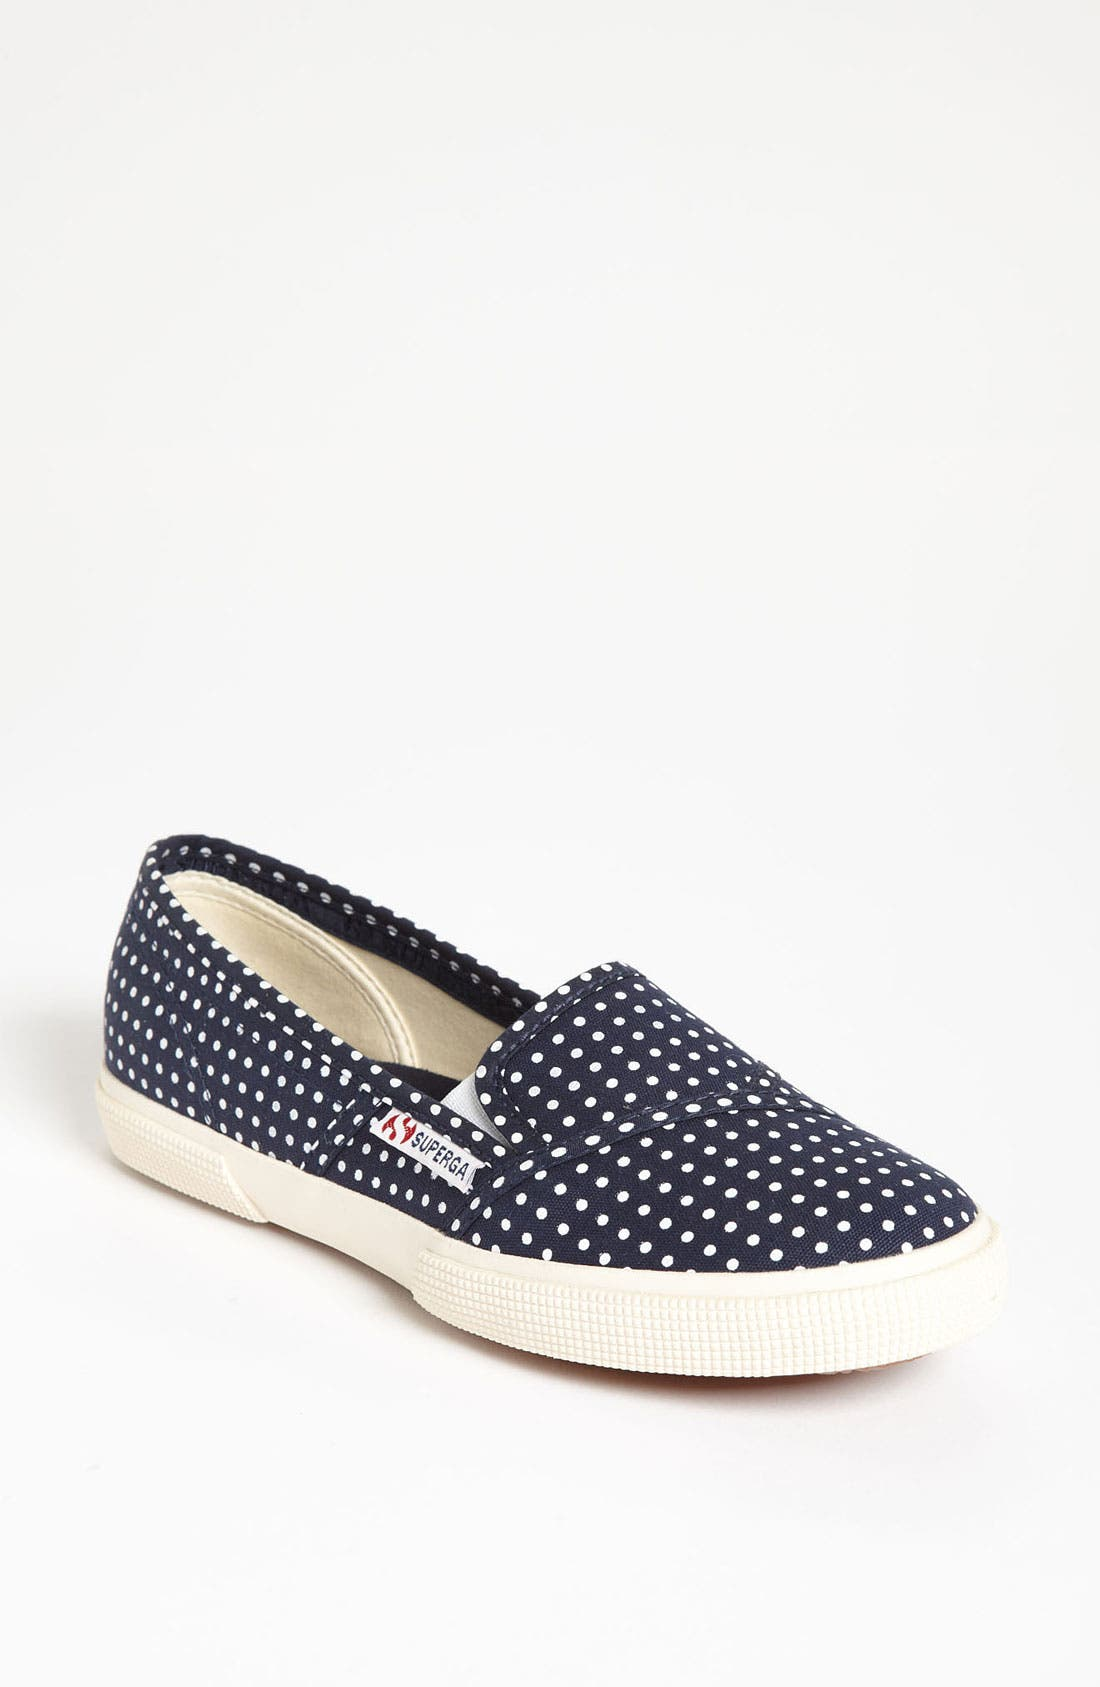 Alternate Image 1 Selected - Superga 'A Line' Sneaker (Women)